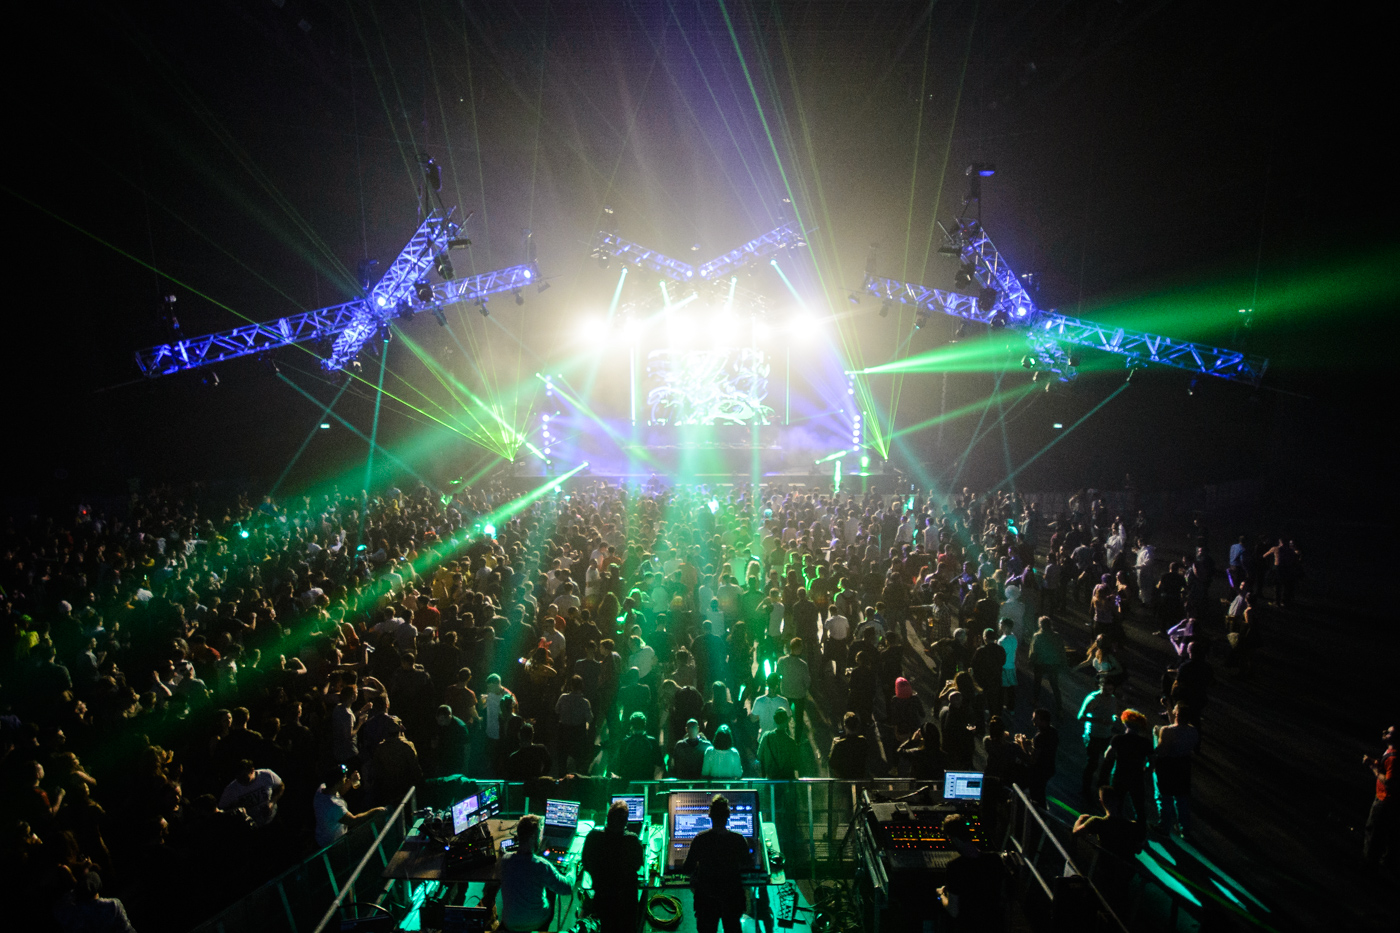 winterparty-at-3arena-dublin-30-10-2016-by-sean-smyth-18-of-53